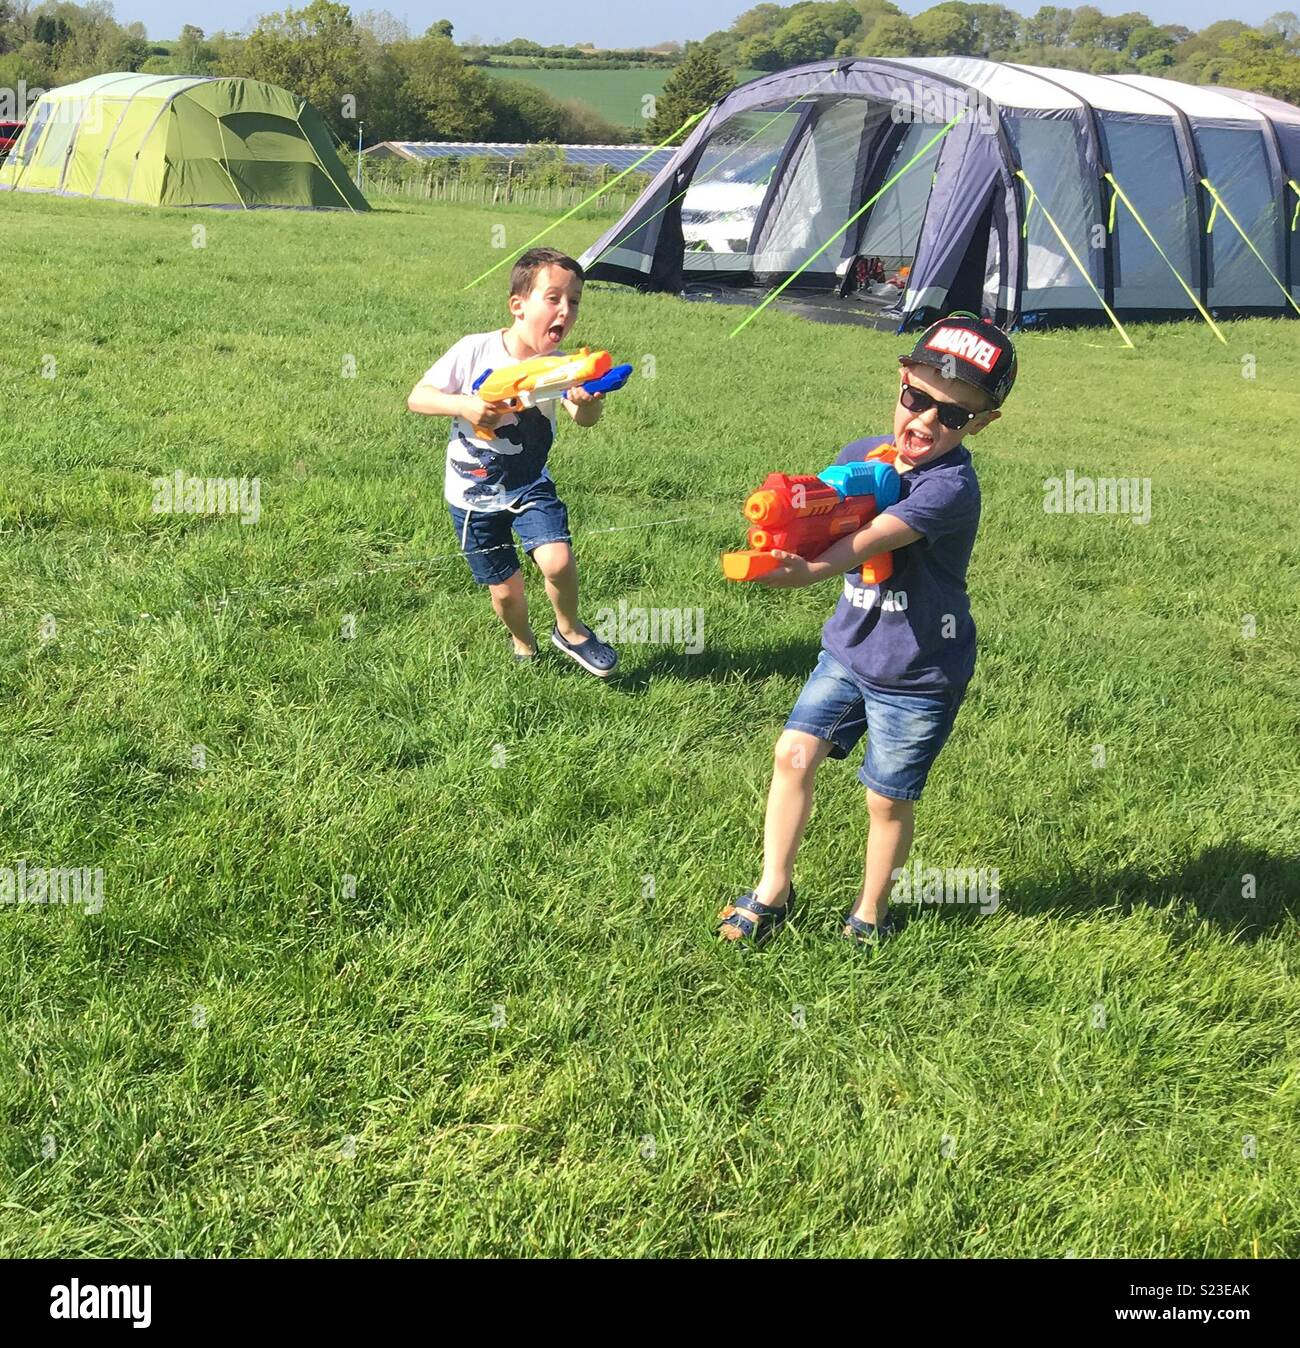 Water pistol fight on a campsite in Britain during the May Bank Holiday in 2018 - Stock Image